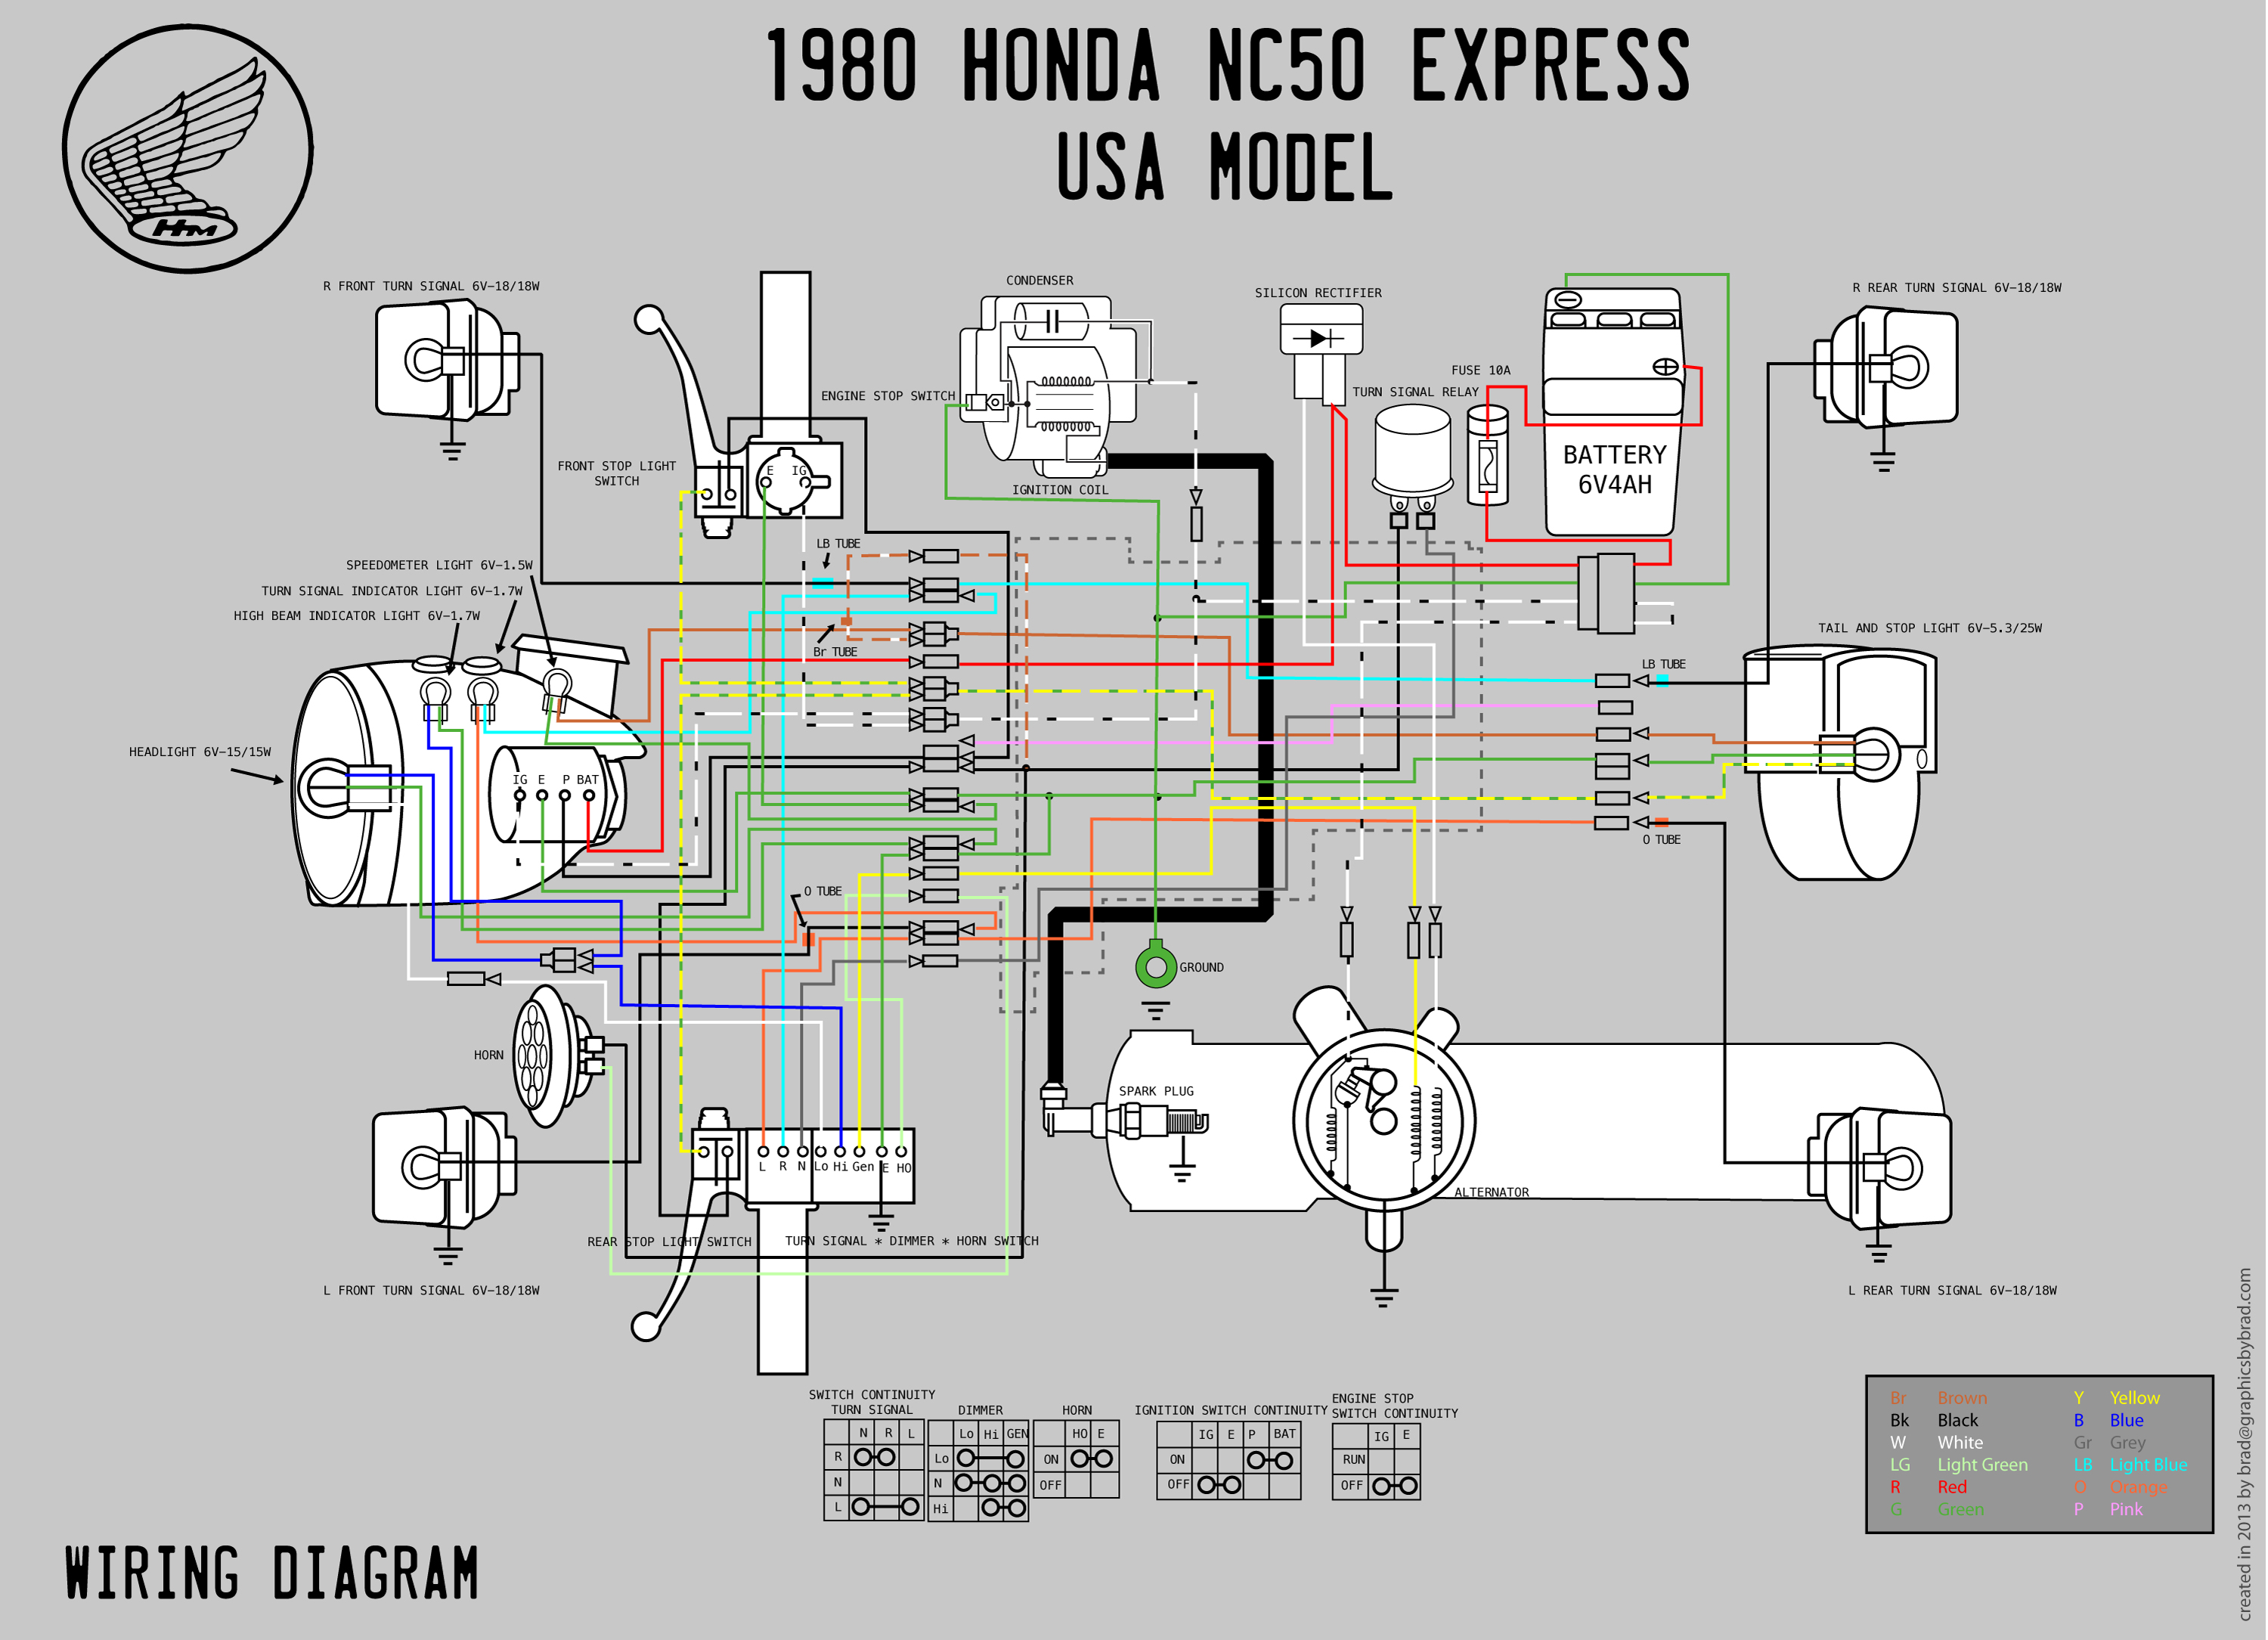 1980 honda nc50 wiring diagram - moped wiki honda rebel ignition wiring diagram #15